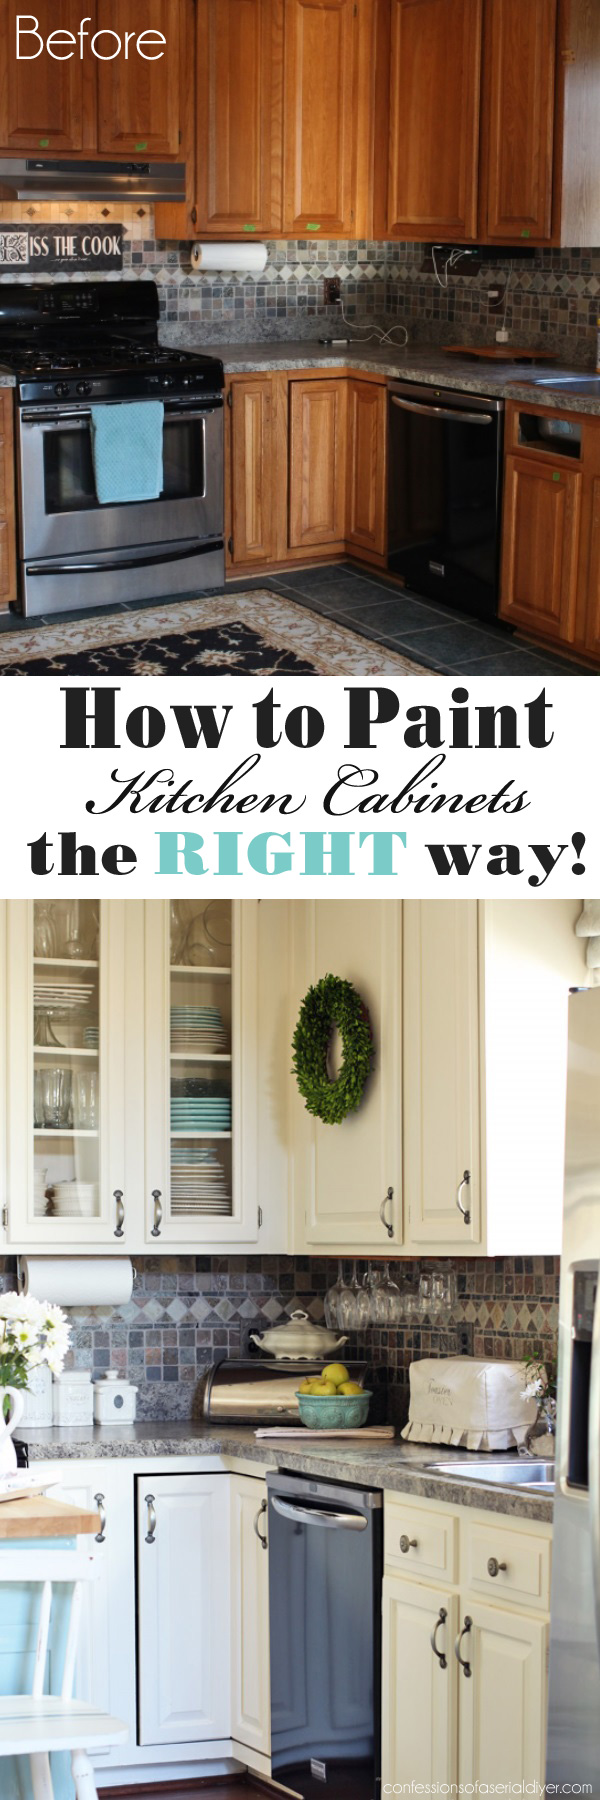 Painted Kitchen Cabinets: Three Years Later | Confessions of a ... on ideas for painting crown molding, ideas for painting kitchen islands, ideas for painting oak cabinets, ideas for painting windows, ideas for painting cabinet doors,